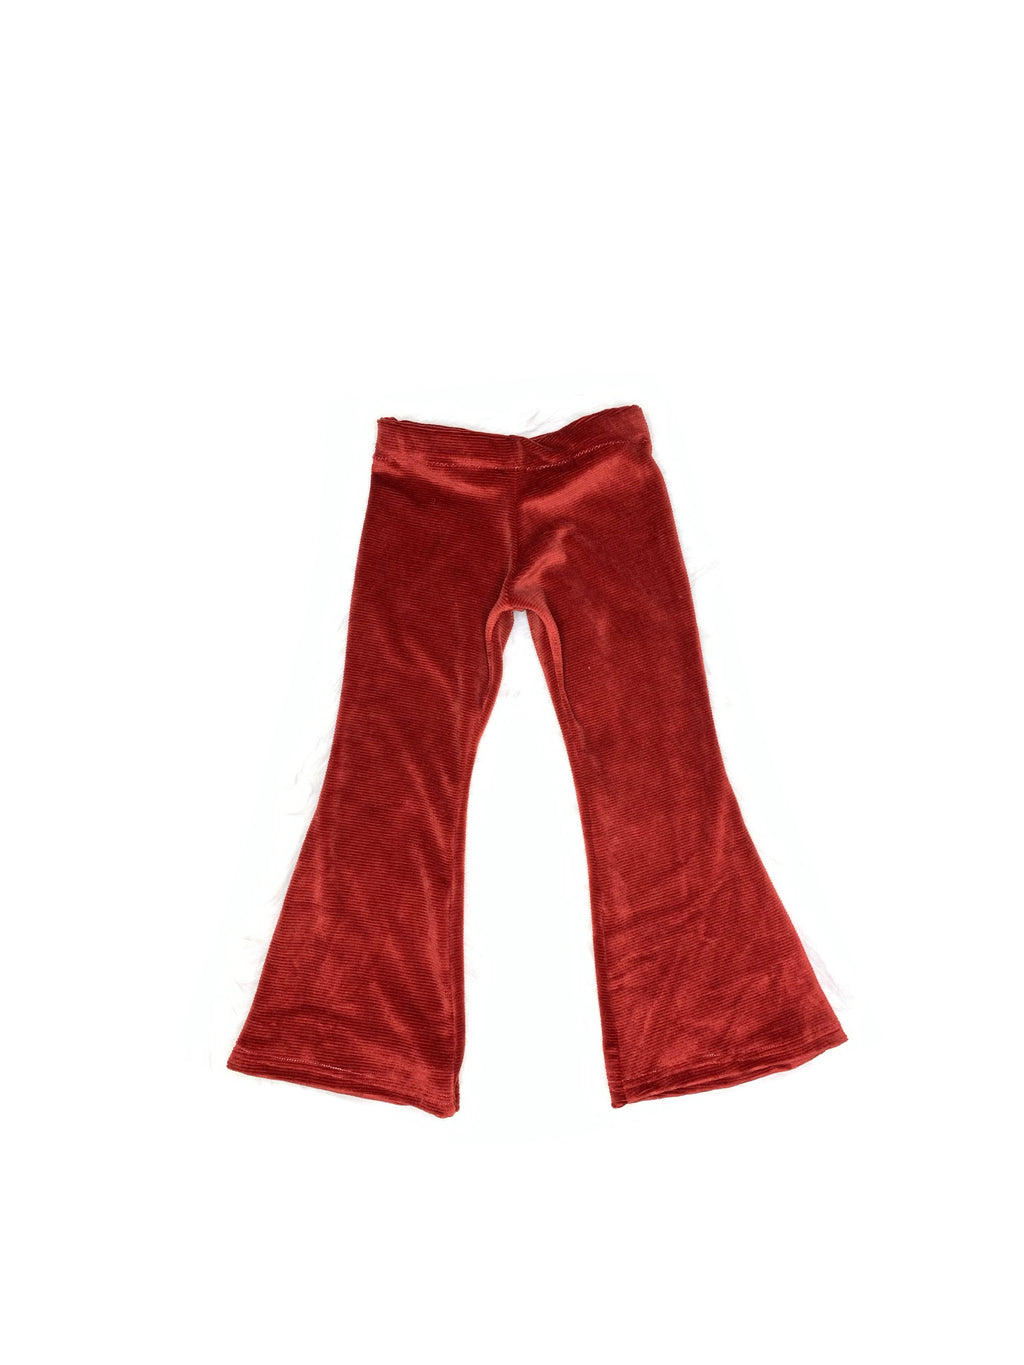 Soft Corduroy Bell Bottoms - Red